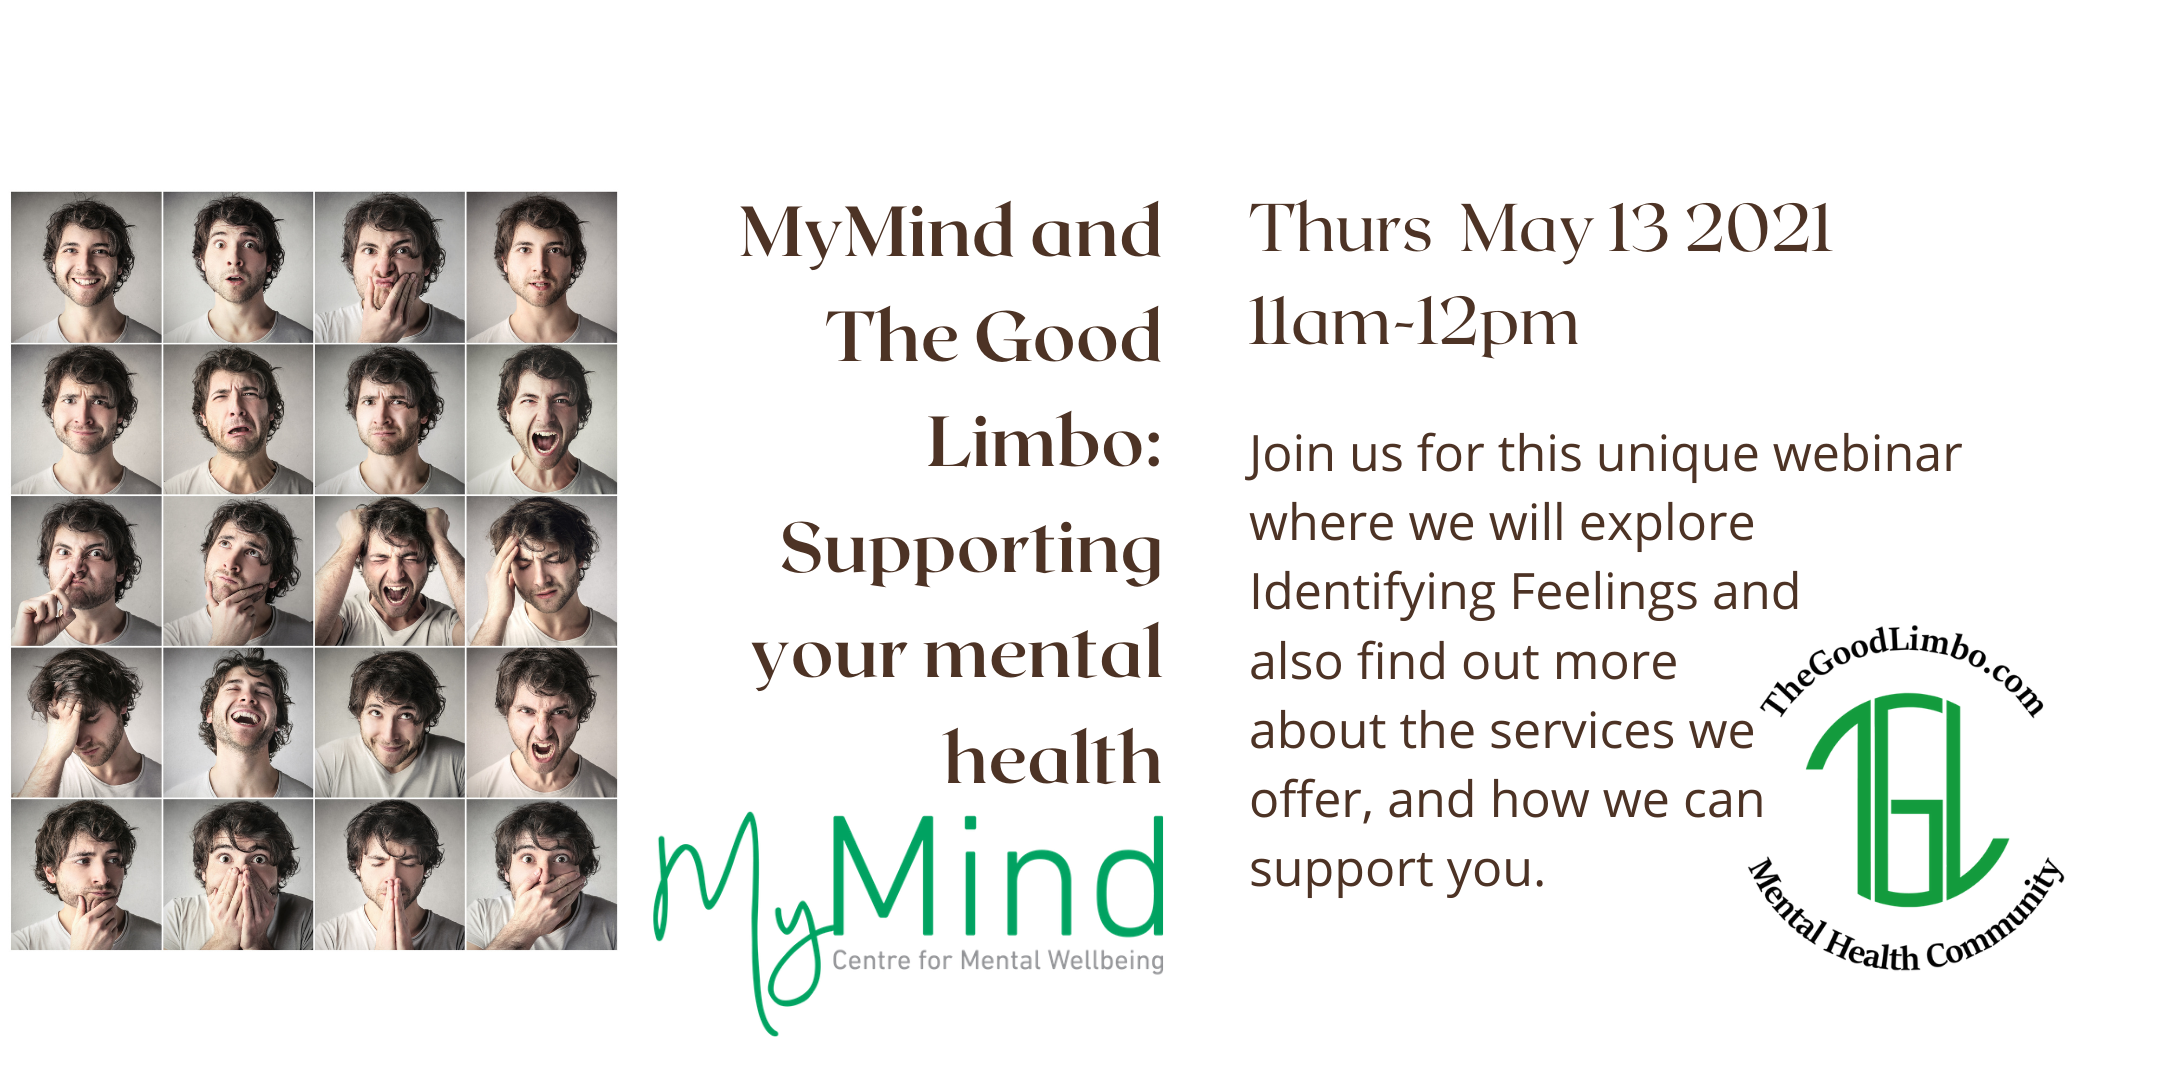 MyMind and The Good Limbo: Supporting your mental health webinar